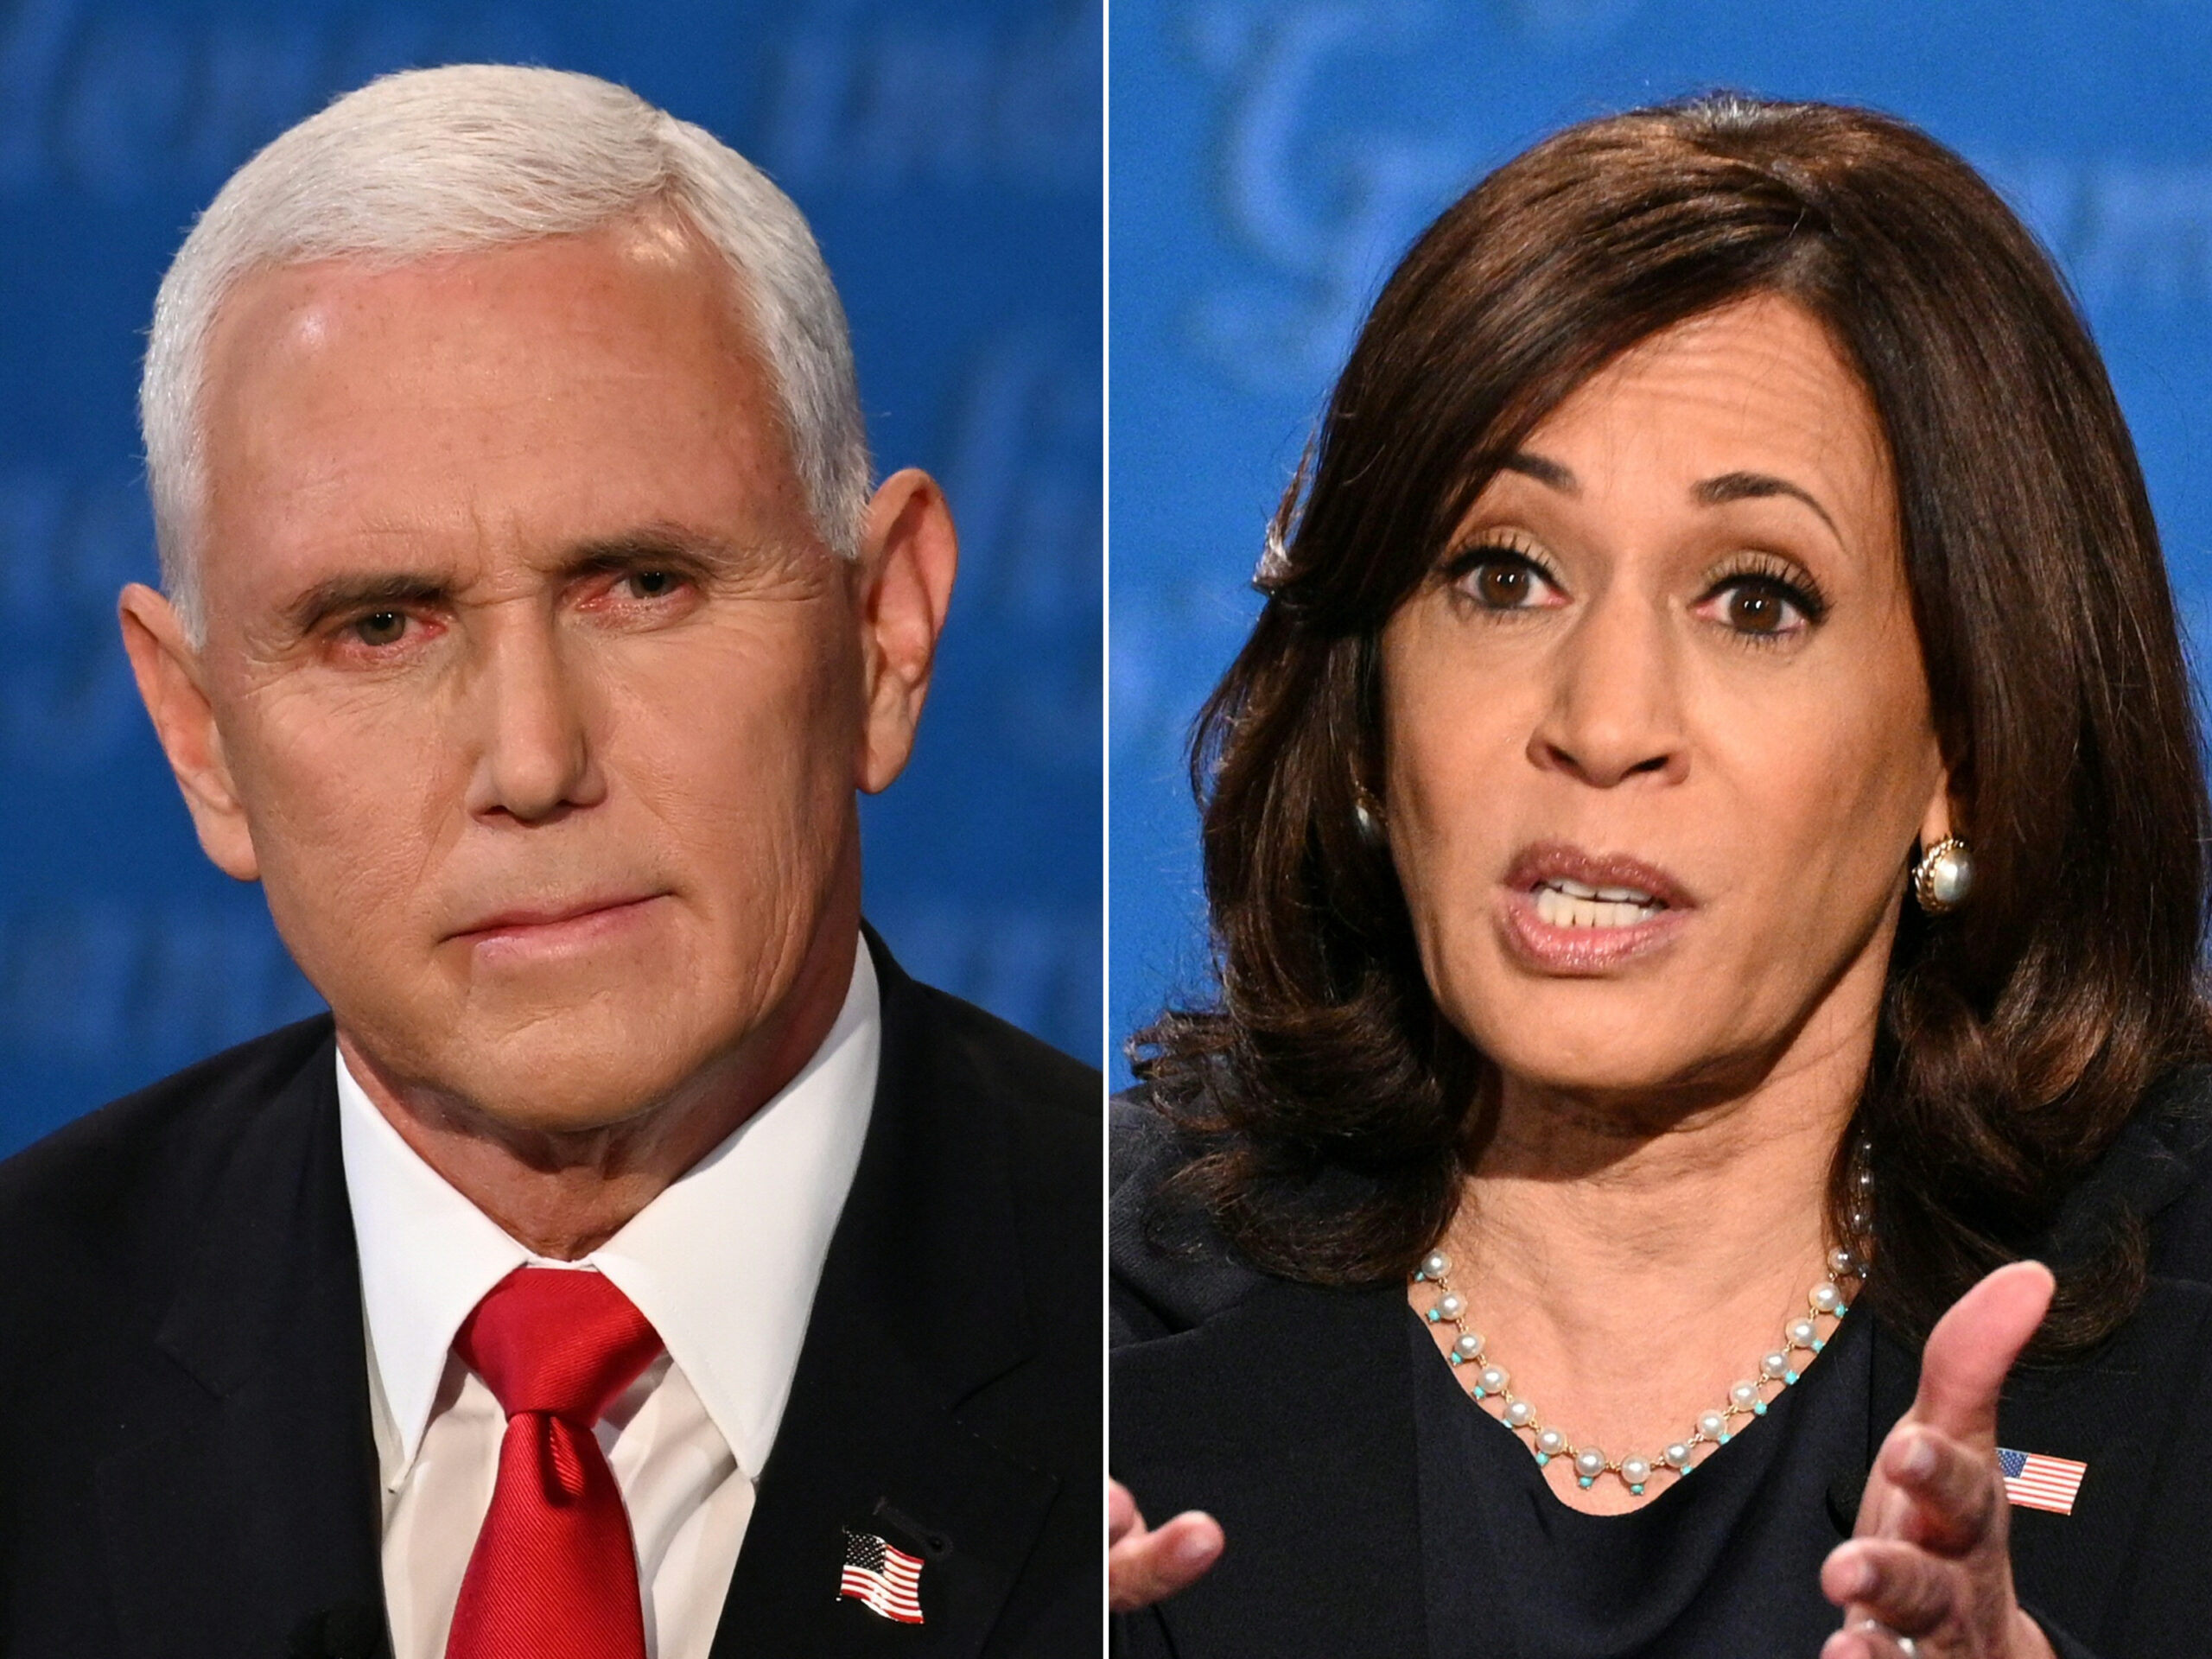 Both Pence and Harris completely dodged a question about presidential succession